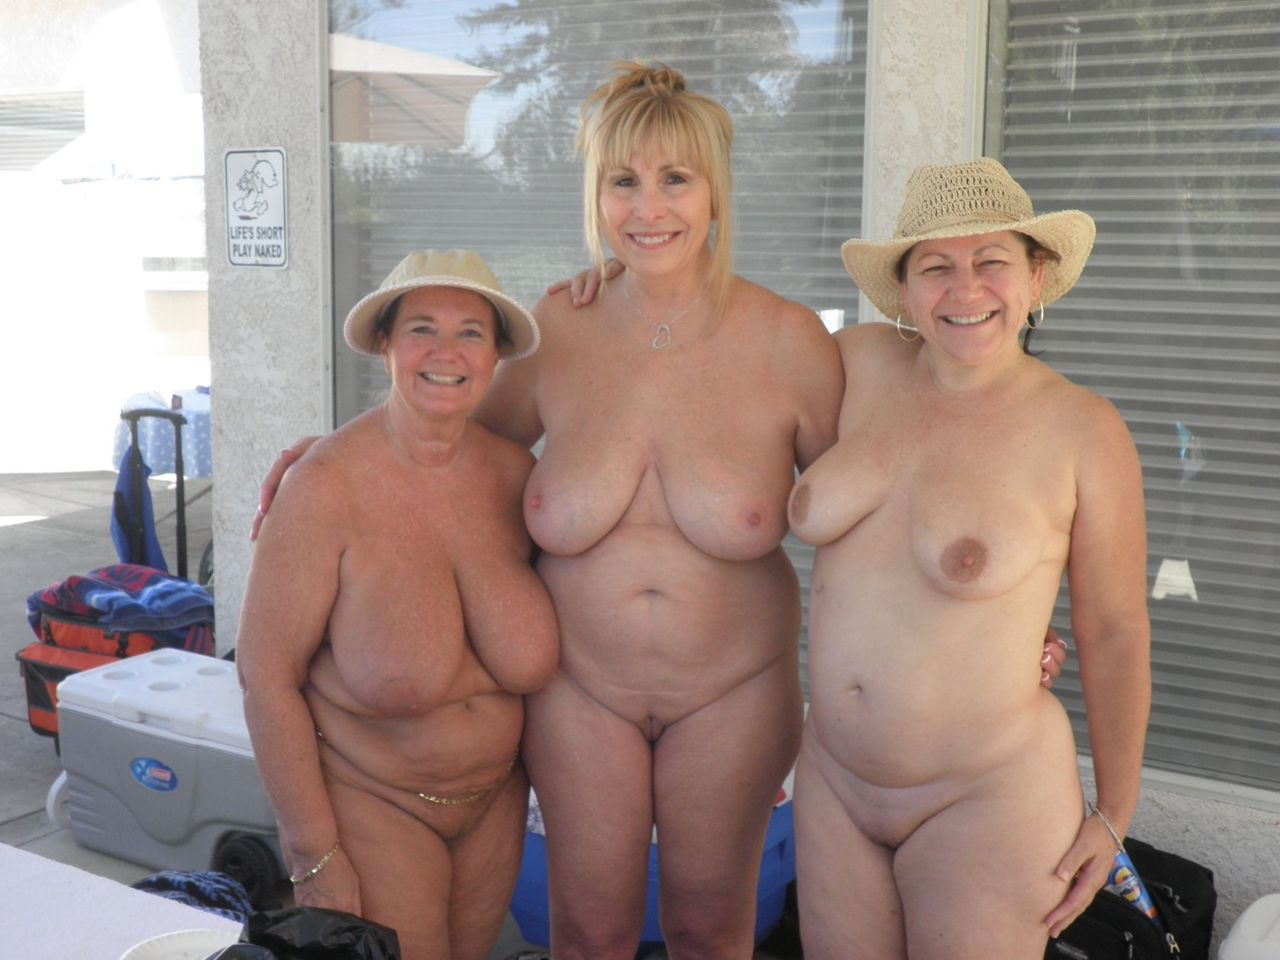 Mature Woman Nudist Mature Women Nudism: www.older-mature.net/mature-woman-nudist/196404.html